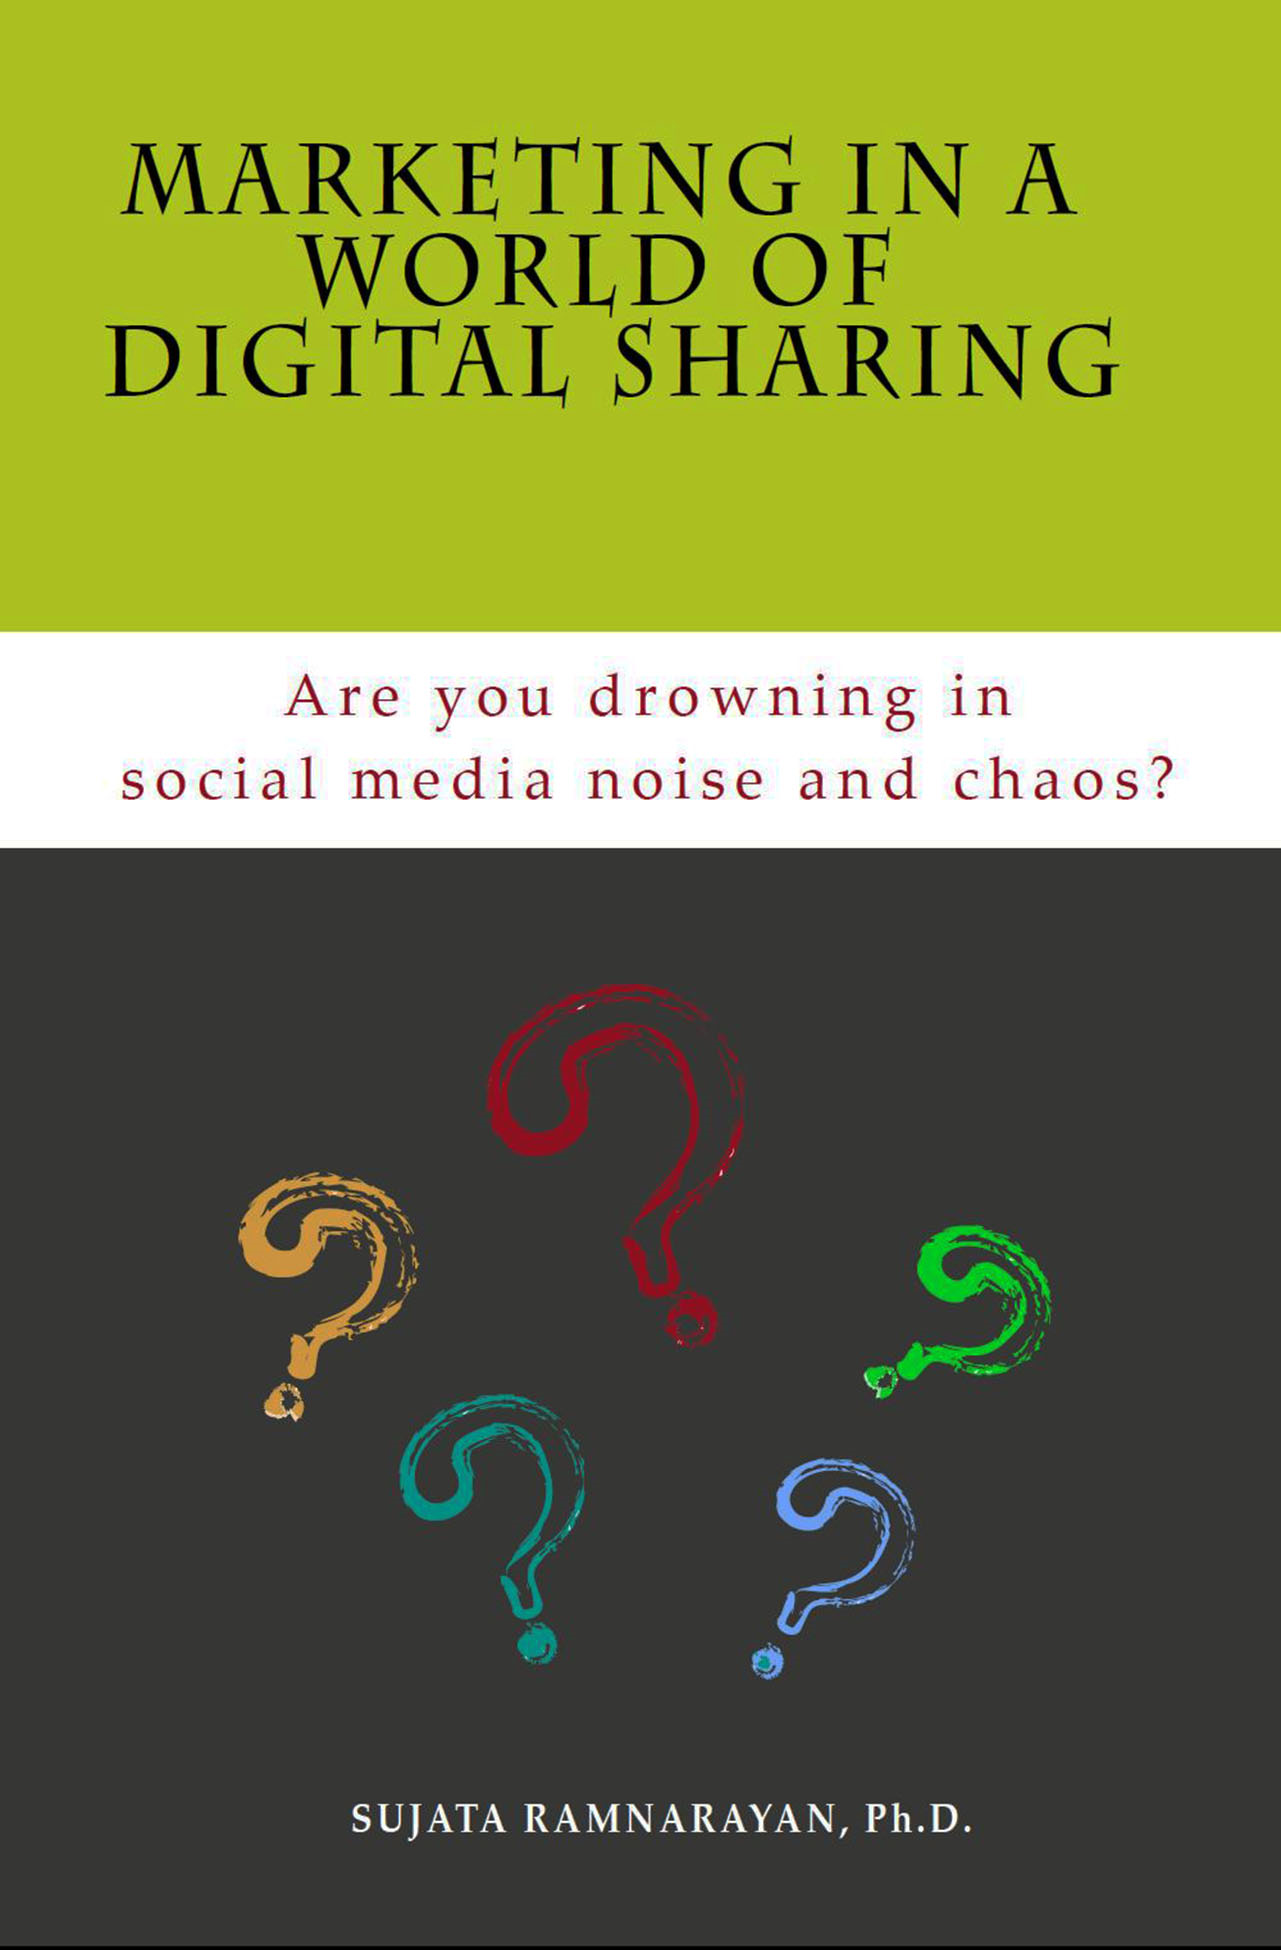 Marketing in a World of Digital Sharing